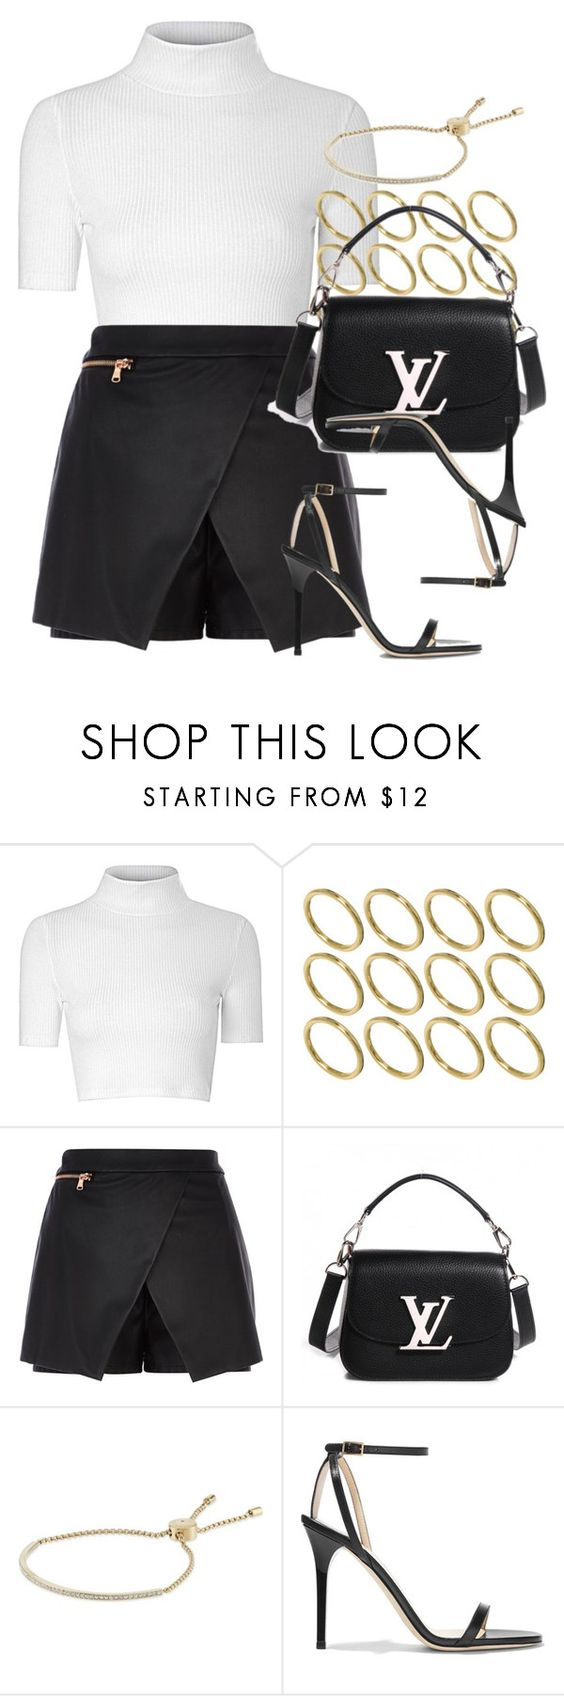 """""""Style #10388"""" by vany-alvarado ❤ liked on Polyvore featuring Glamorous, ASOS, River Island, Louis Vuitton, Michael Kors and Jimmy Choo"""